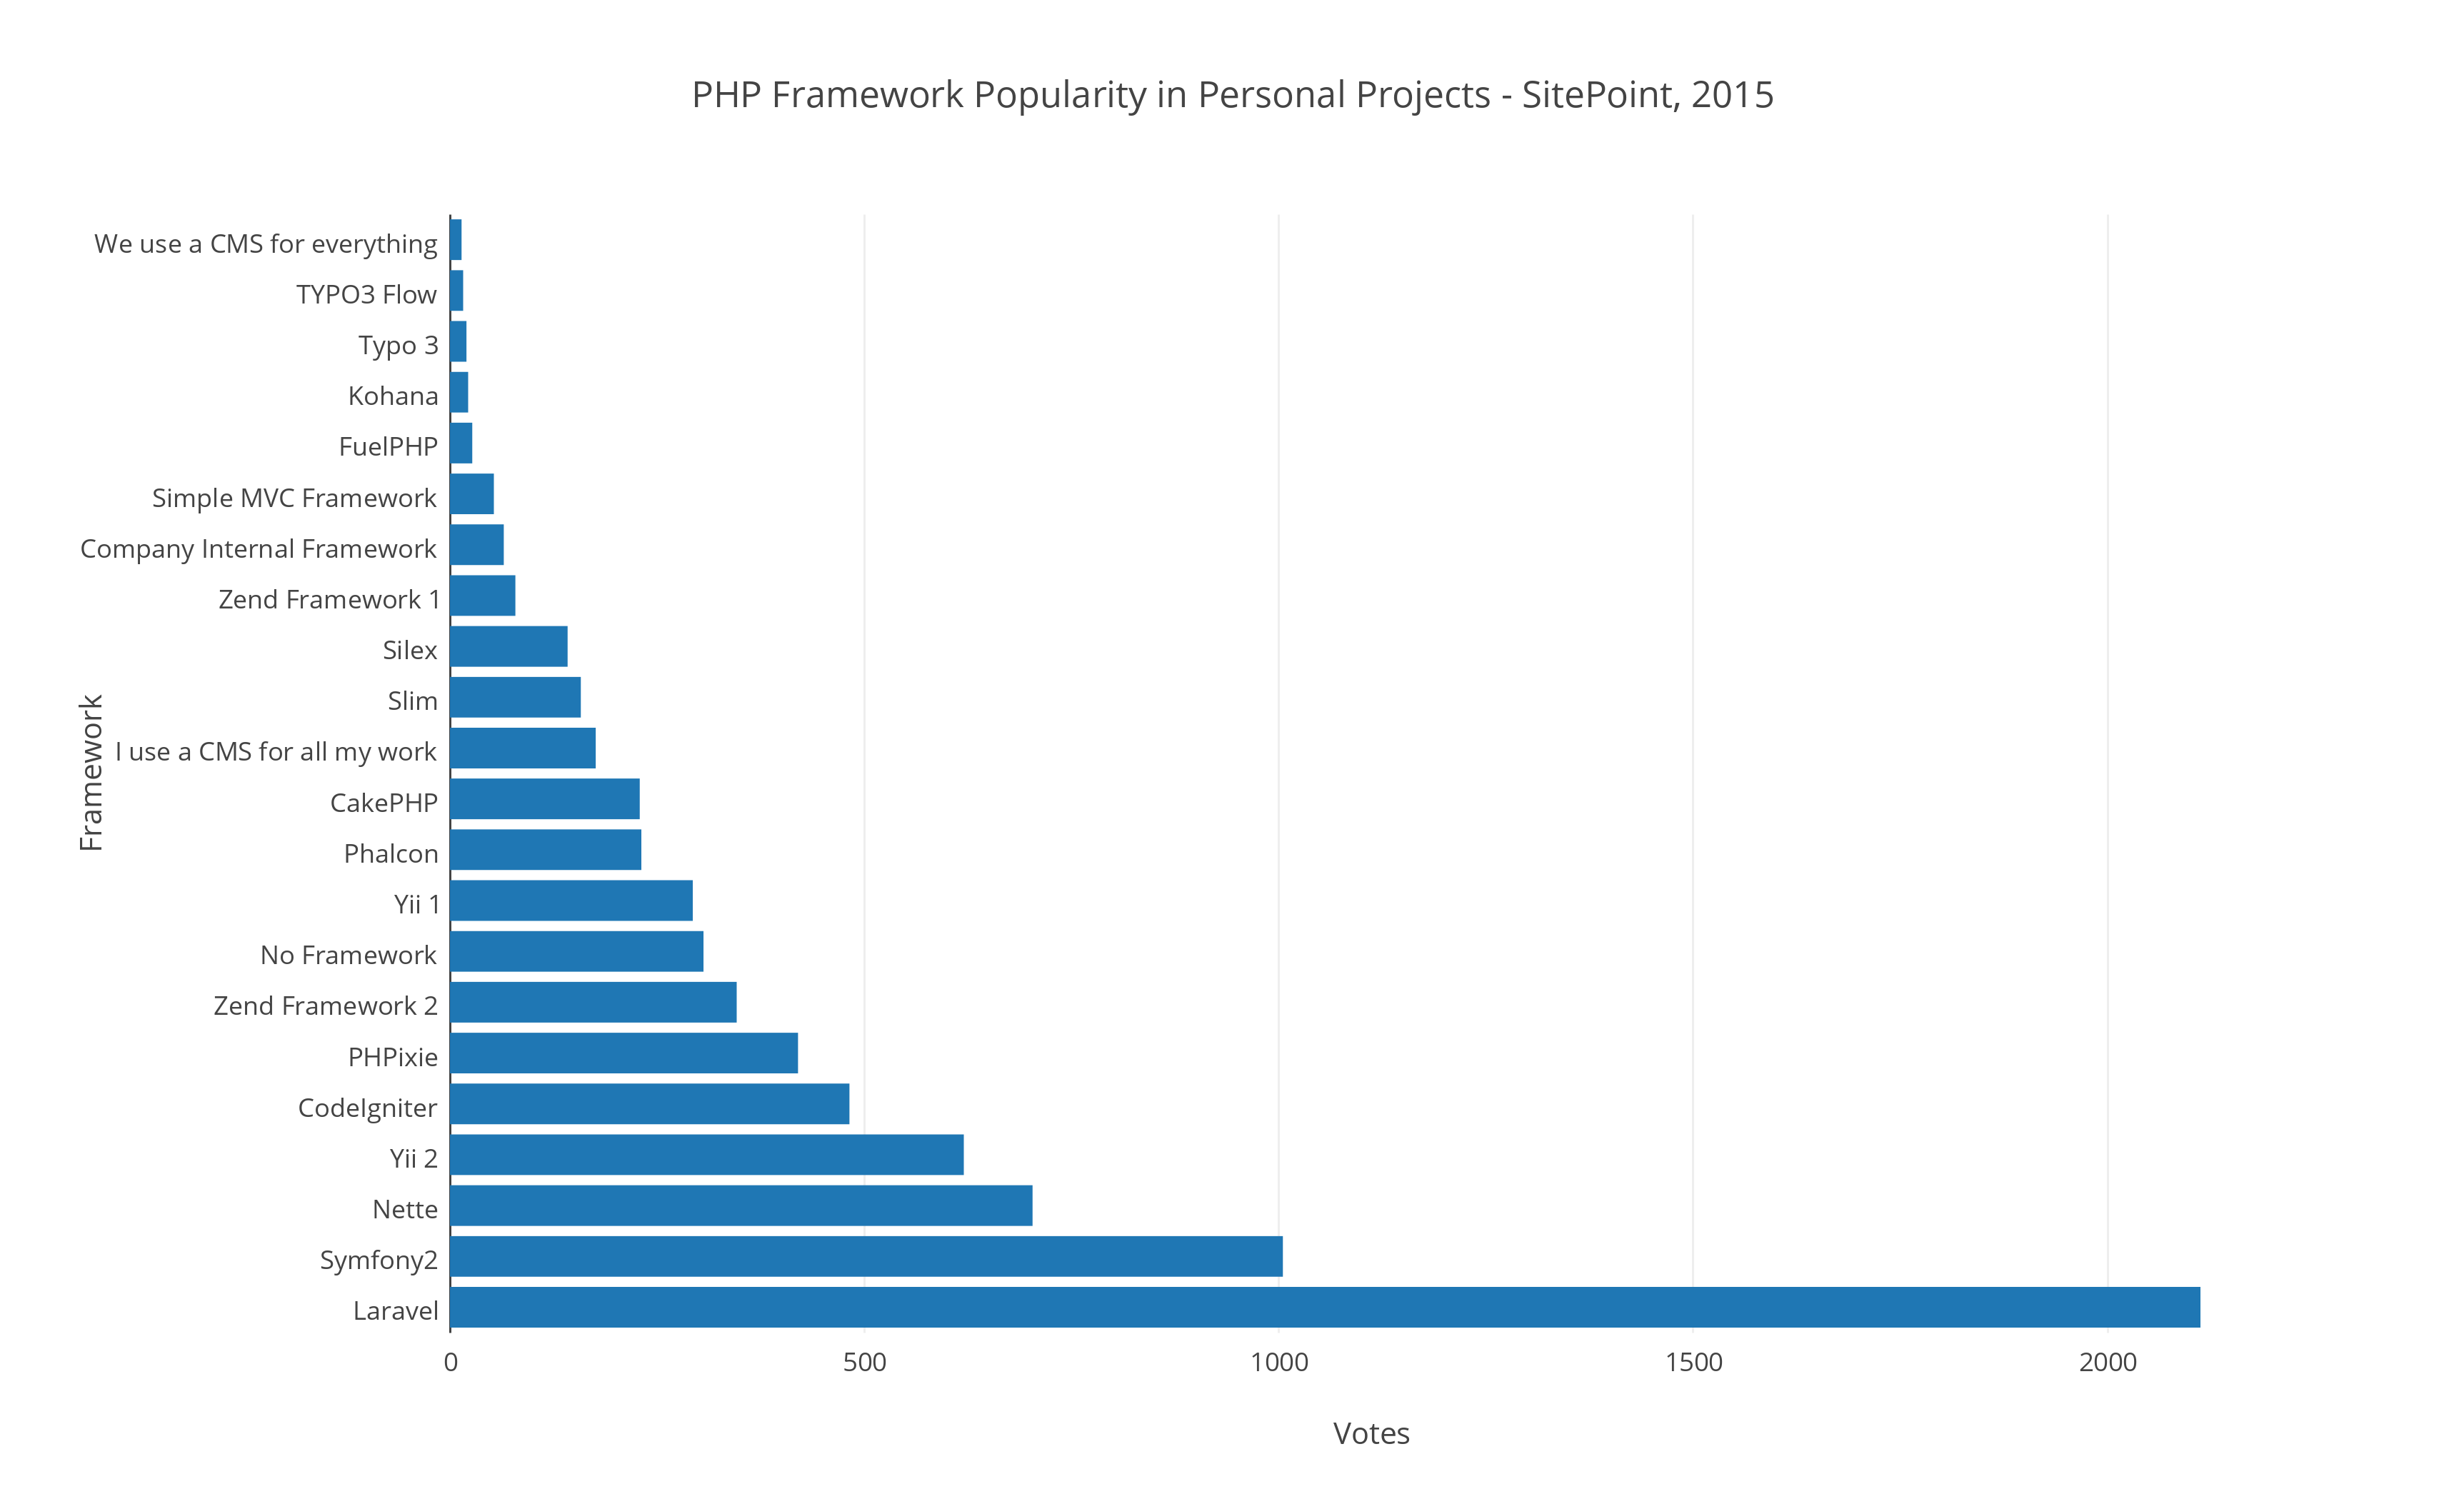 http://dab1nmslvvntp.cloudfront.net/wp-content/uploads/2015/03/1427547433php_framework_popularity_in_personal_projects_-_sitepoint2c_2015.png